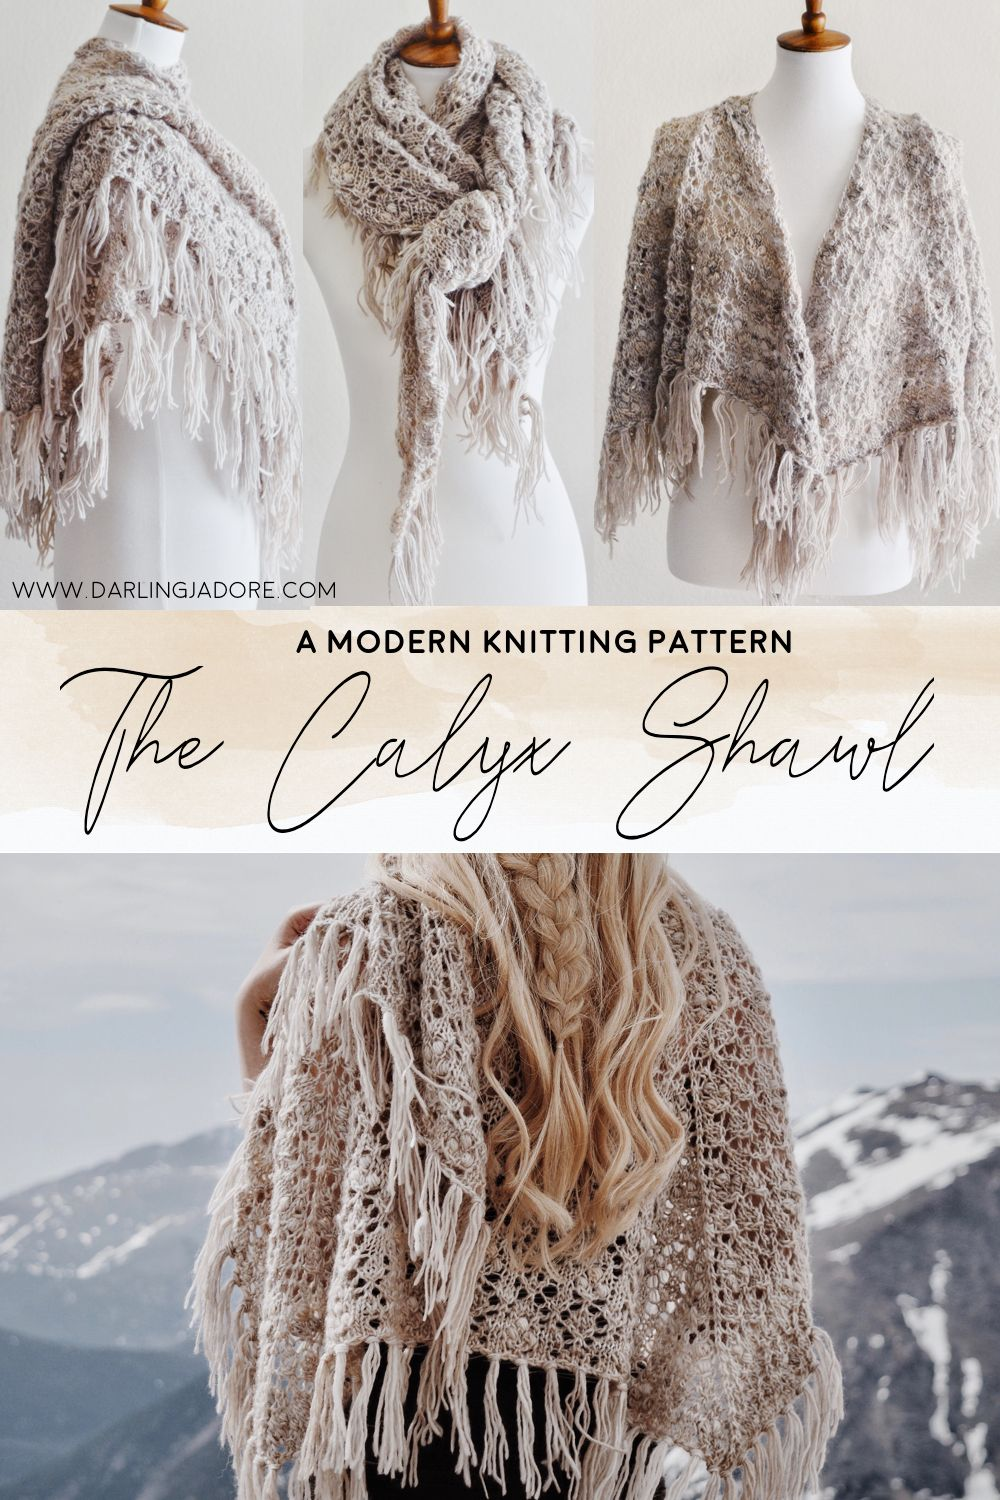 Lace Shawl With Tassels Knitting Pattern by Darling Jadore | THE CALYX SHAWL